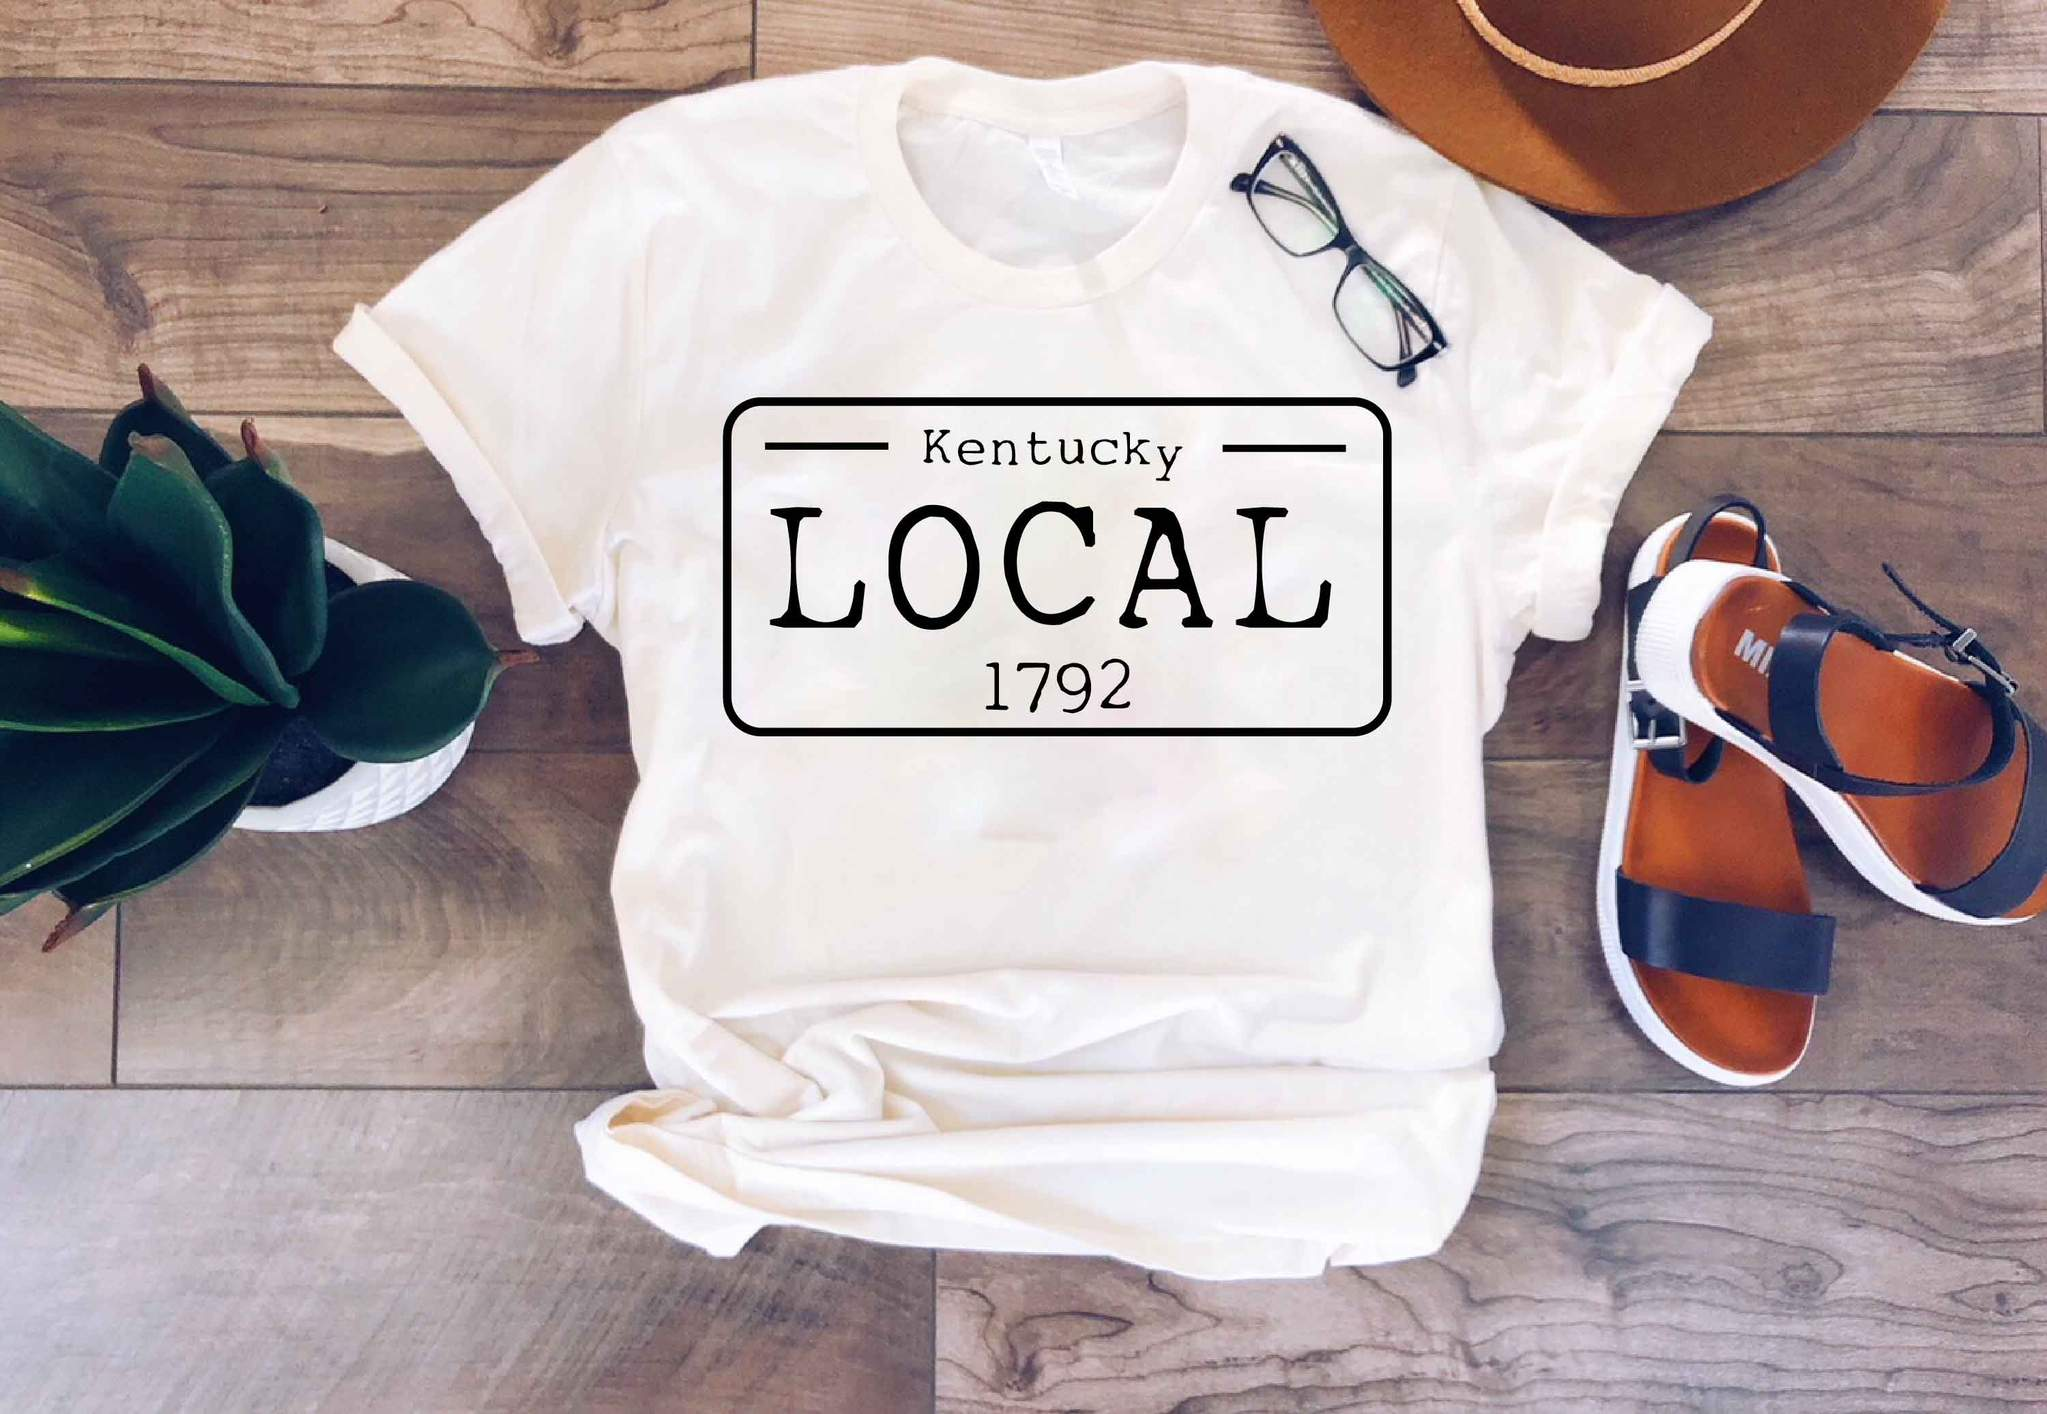 Local License Plate tees are here!!